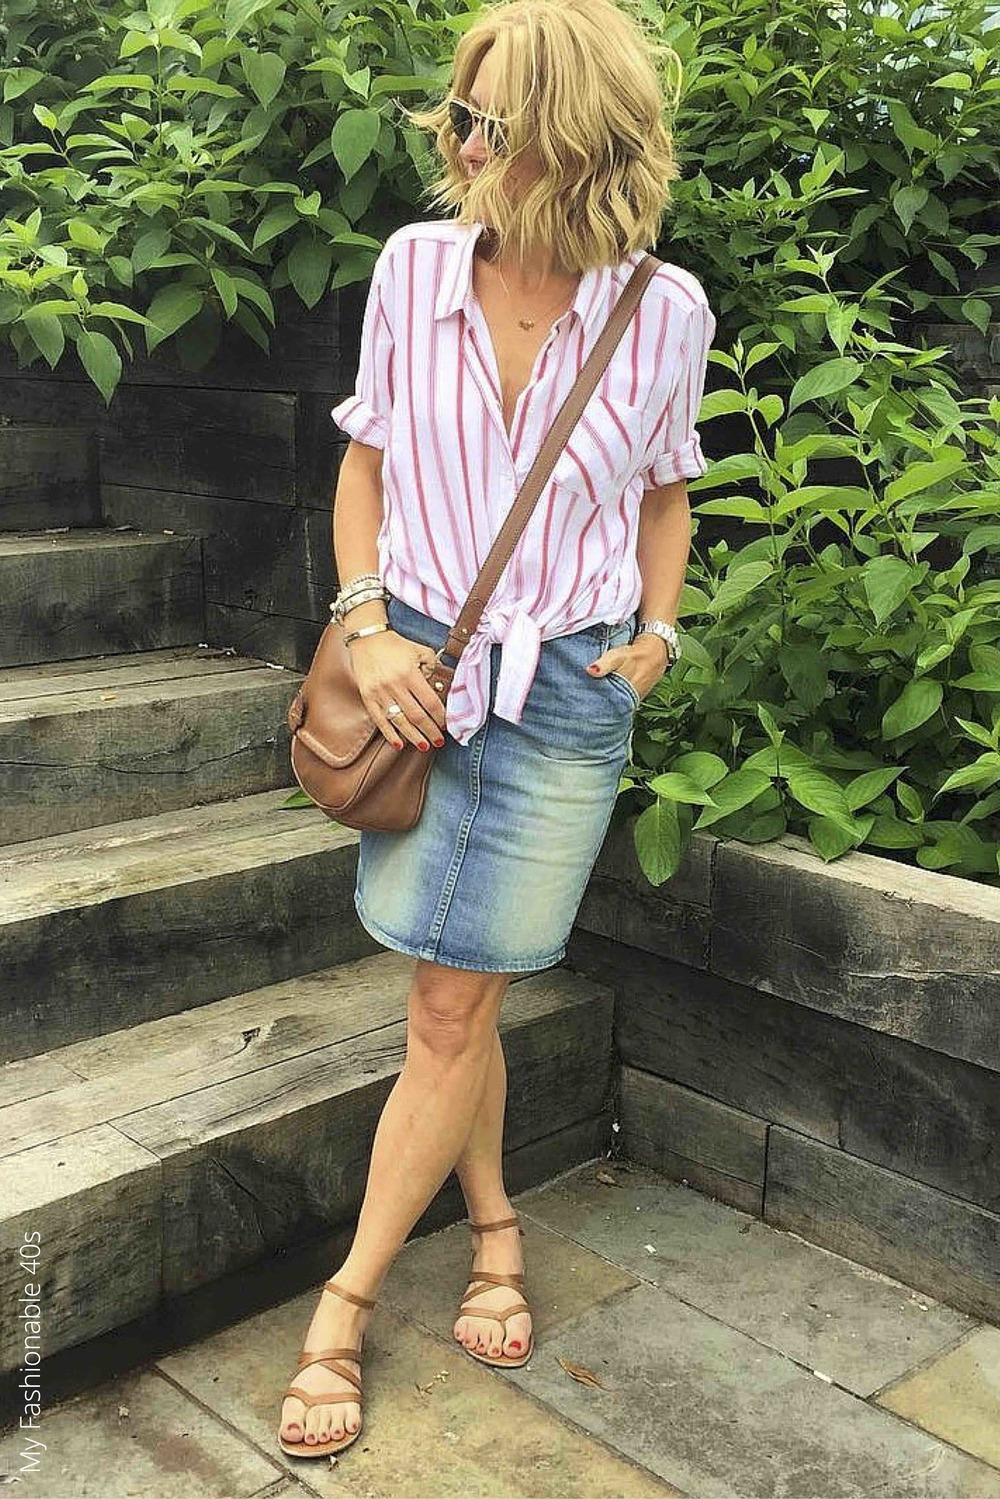 Knotted tops in your 40s | LoloLovett.com